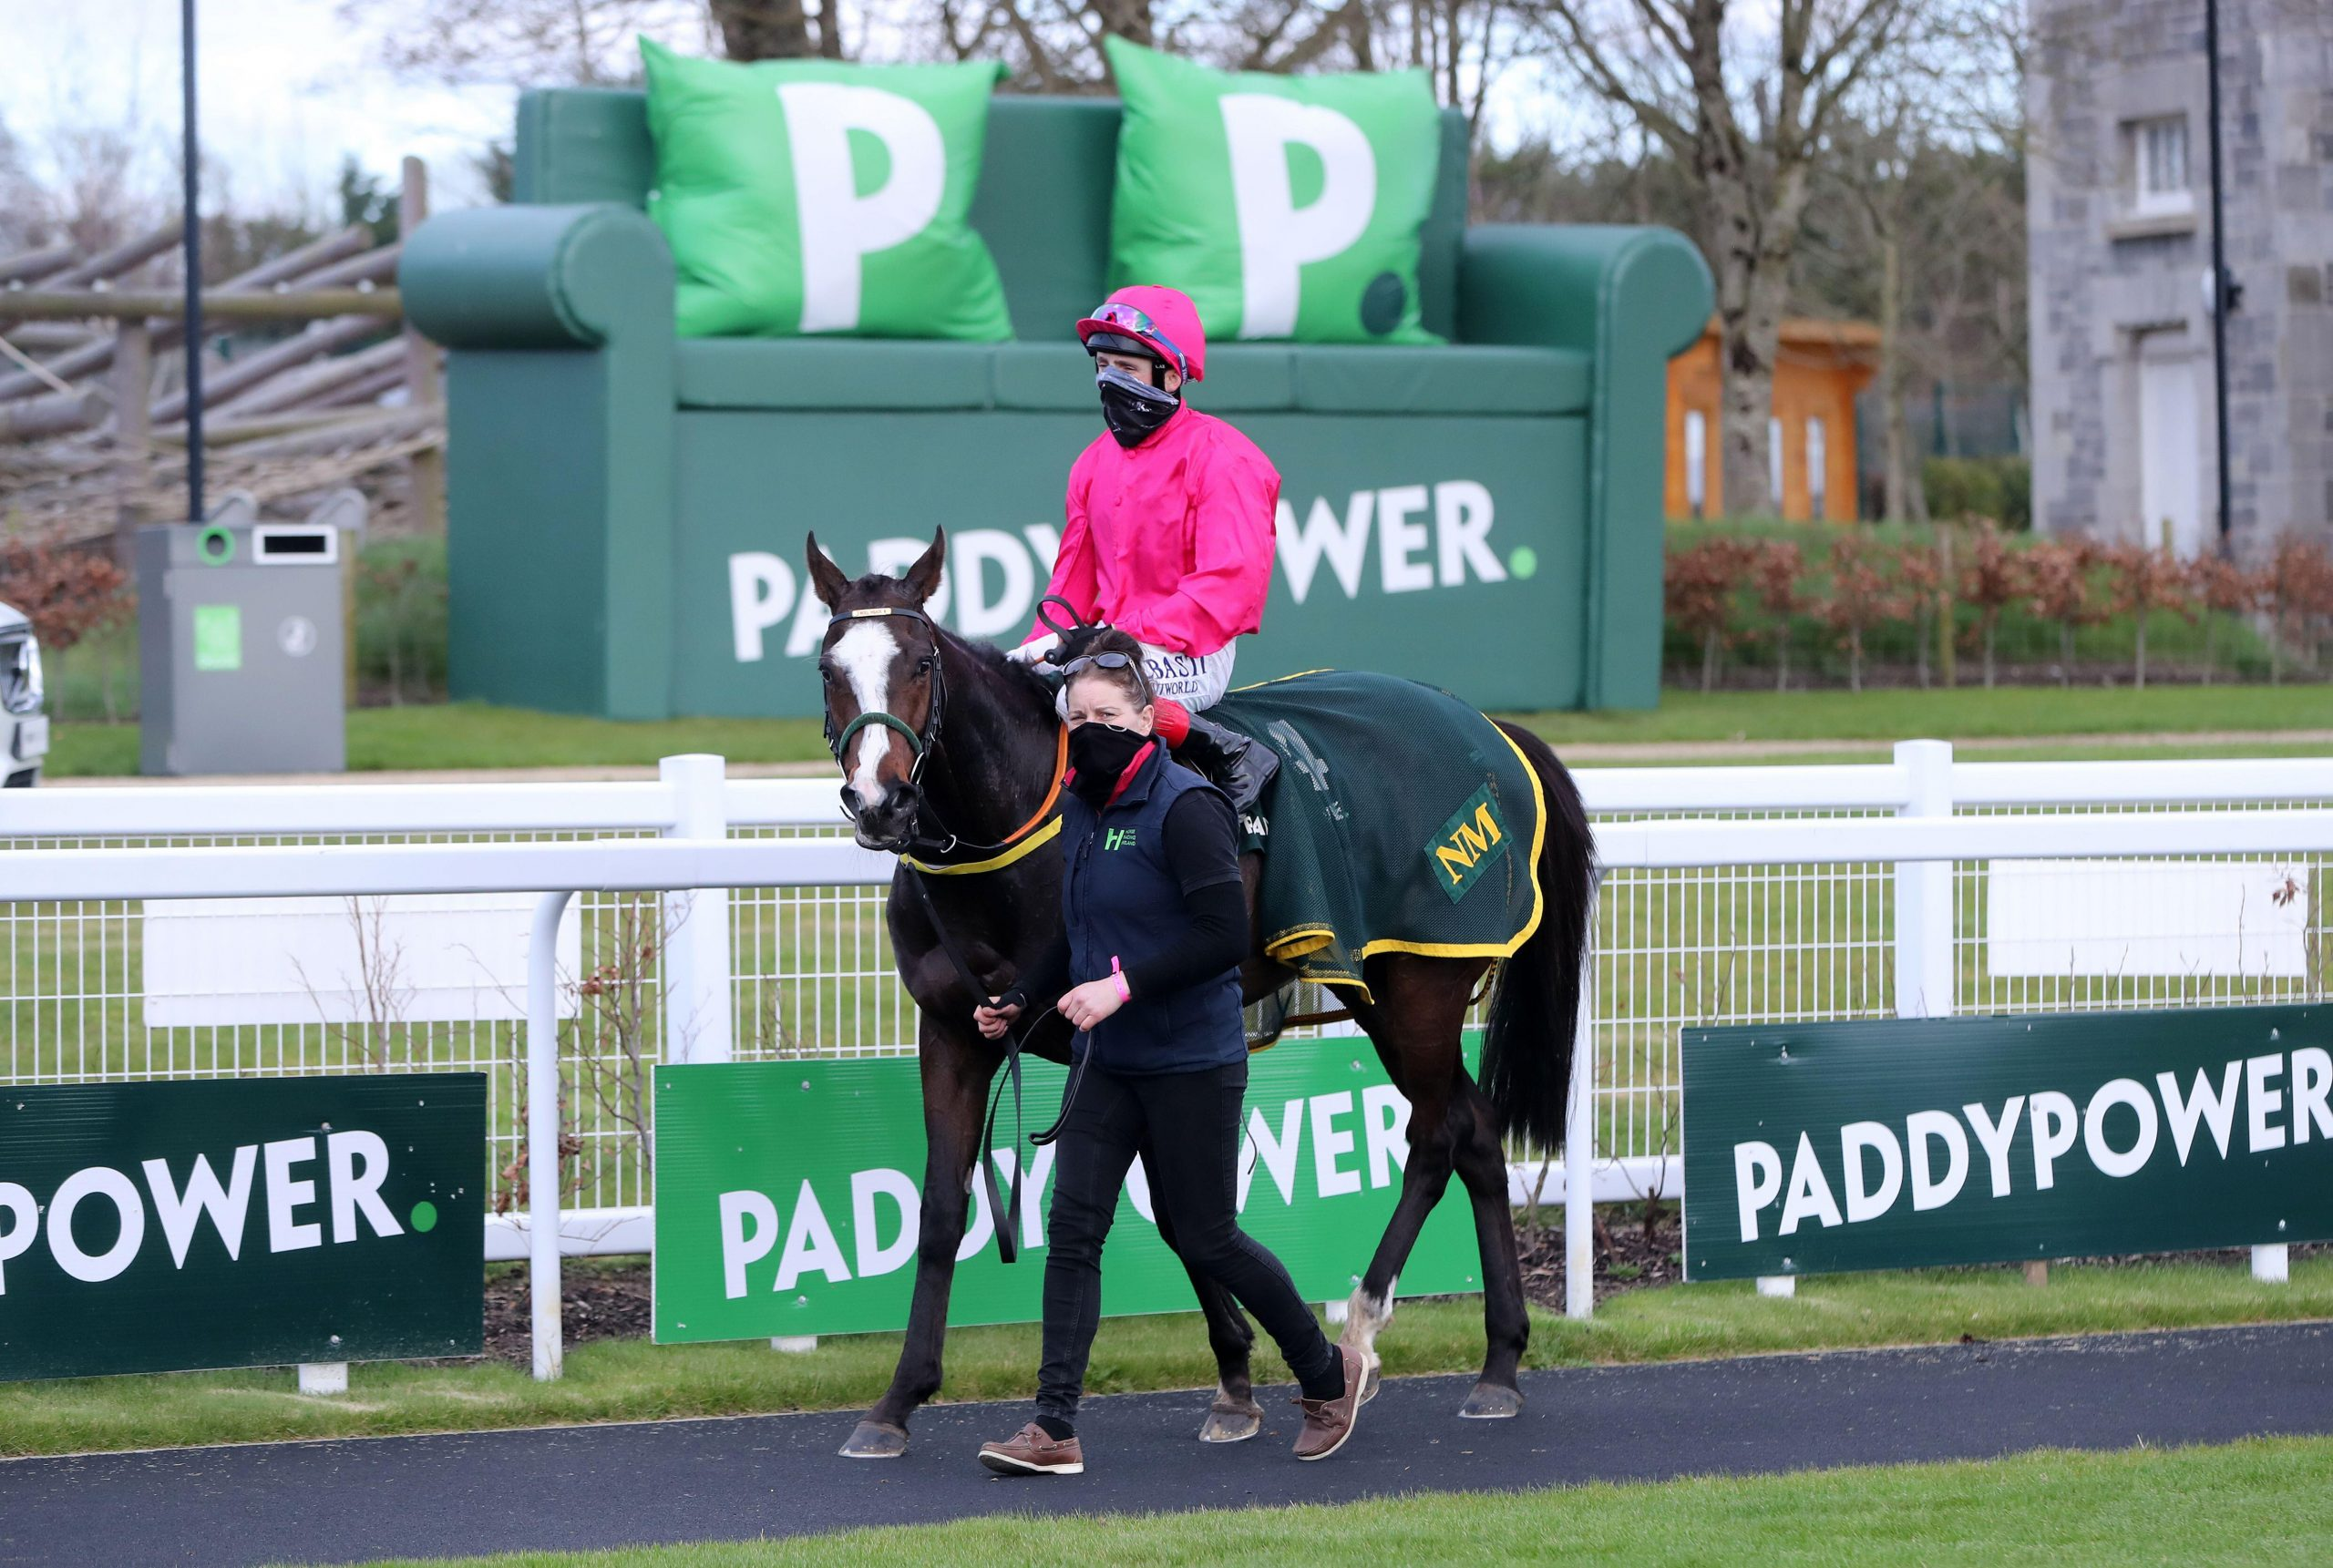 2F4GB7Y Layfayette ridden by Chris Hayes after winning the Paddy Power Irish Lincolnshire at Curragh Racecourse. Picture date: Sunday March 21, 2021.